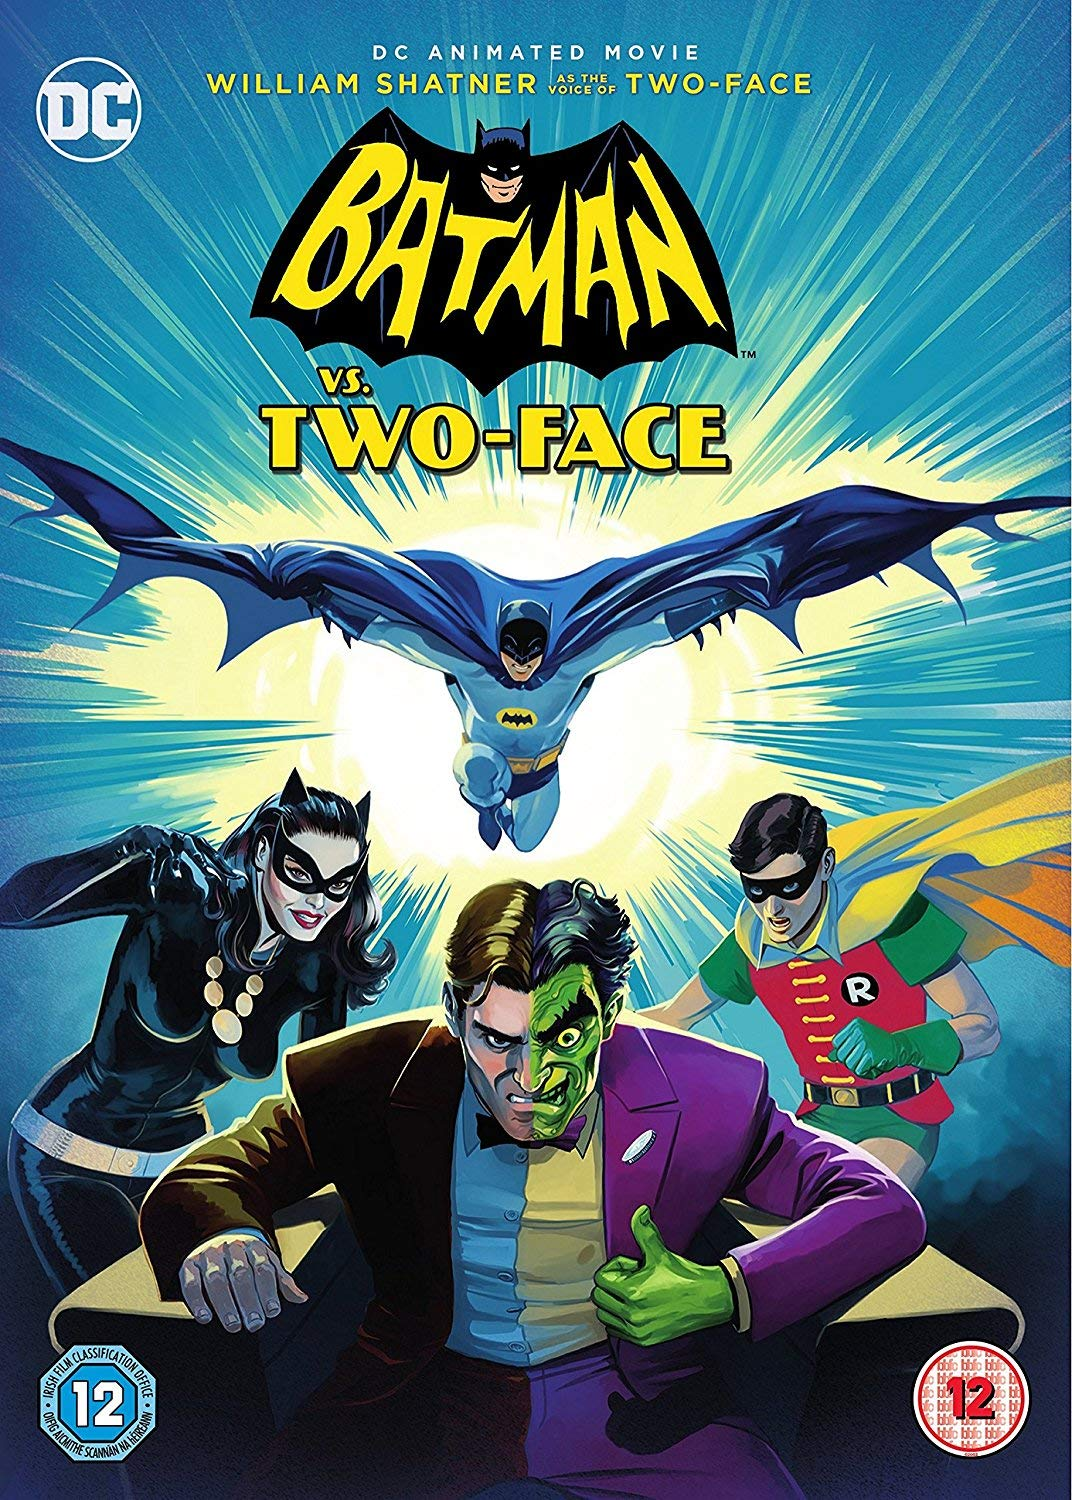 Amazon.com: Batman Vs. Two Face [DVD] [2017]: Movies & TV